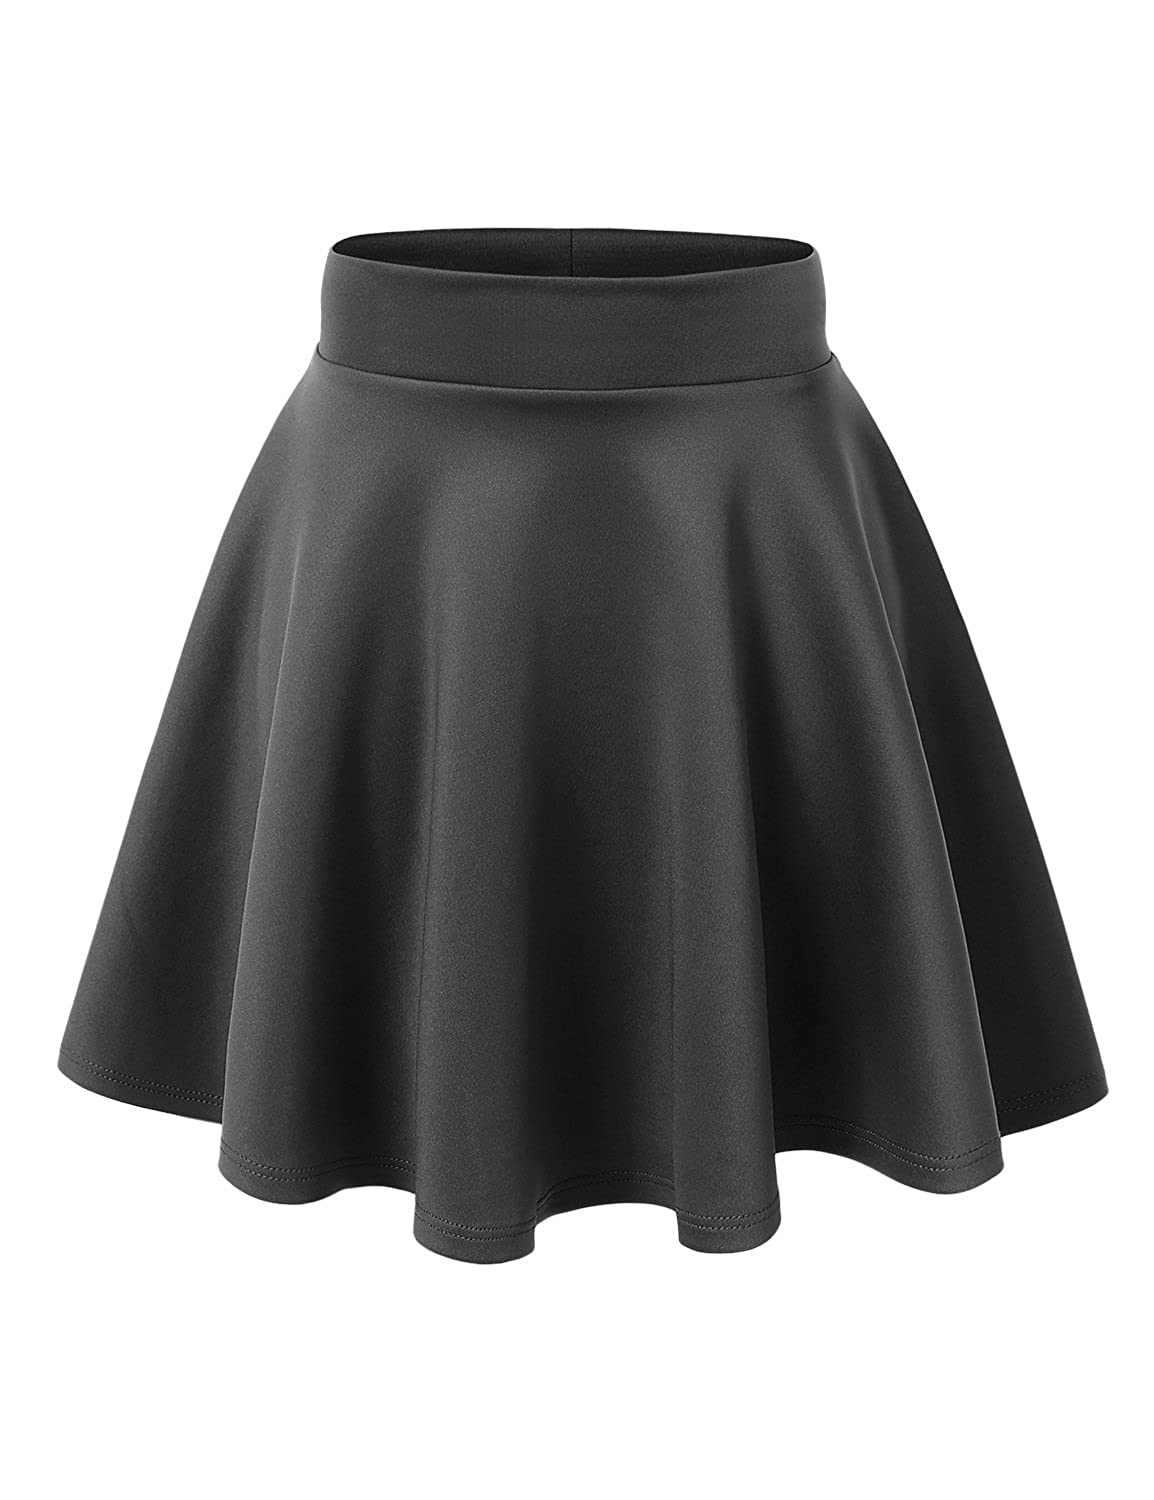 714794b7f This versatile skater skirt is a must to make an amazing outfit / Skater  skirt with a paneled stretch-knit body and concealed elastic waist